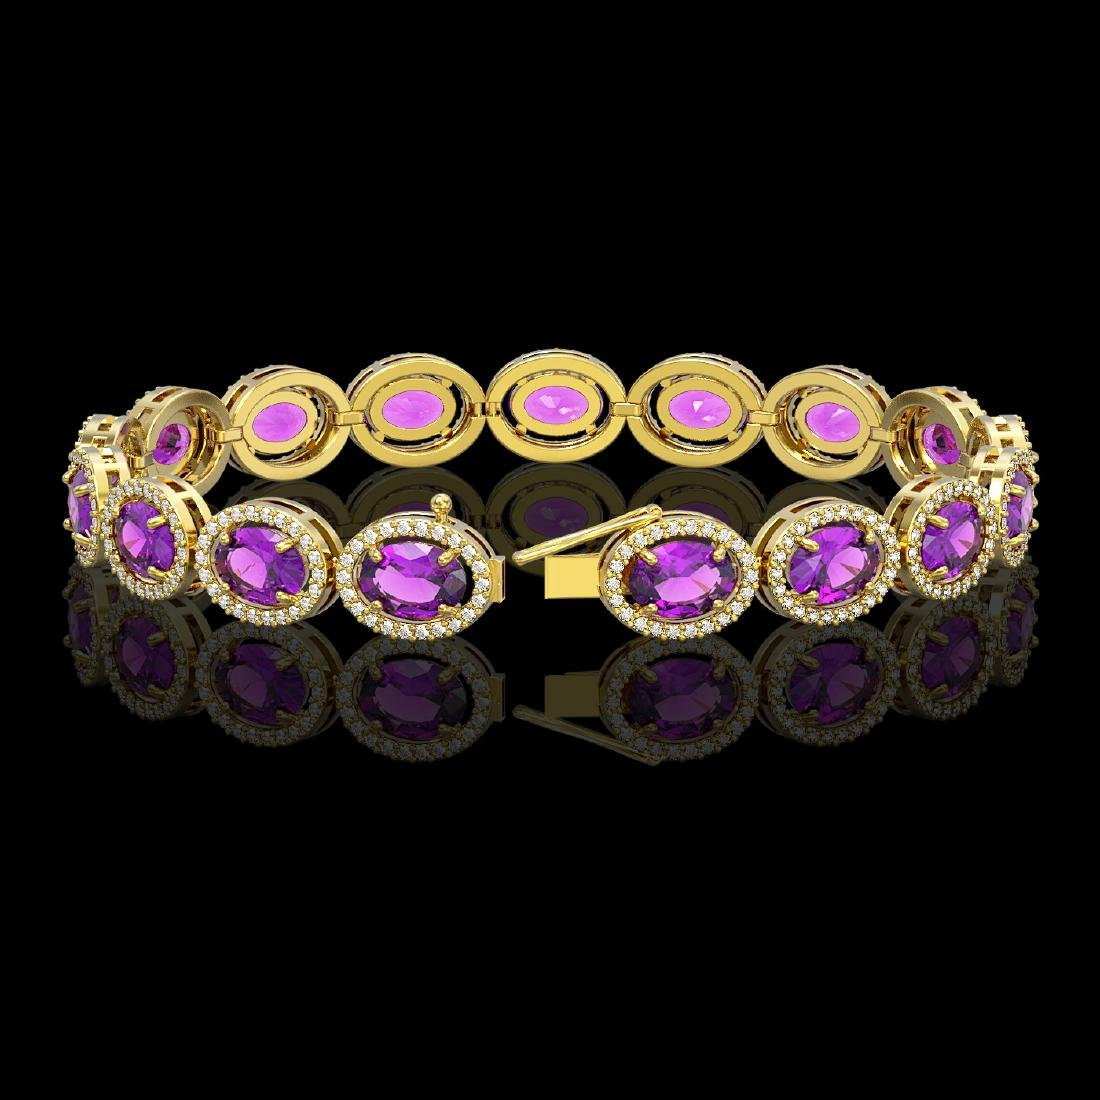 19.82 CTW Amethyst & Diamond Halo Bracelet 10K Yellow - 2